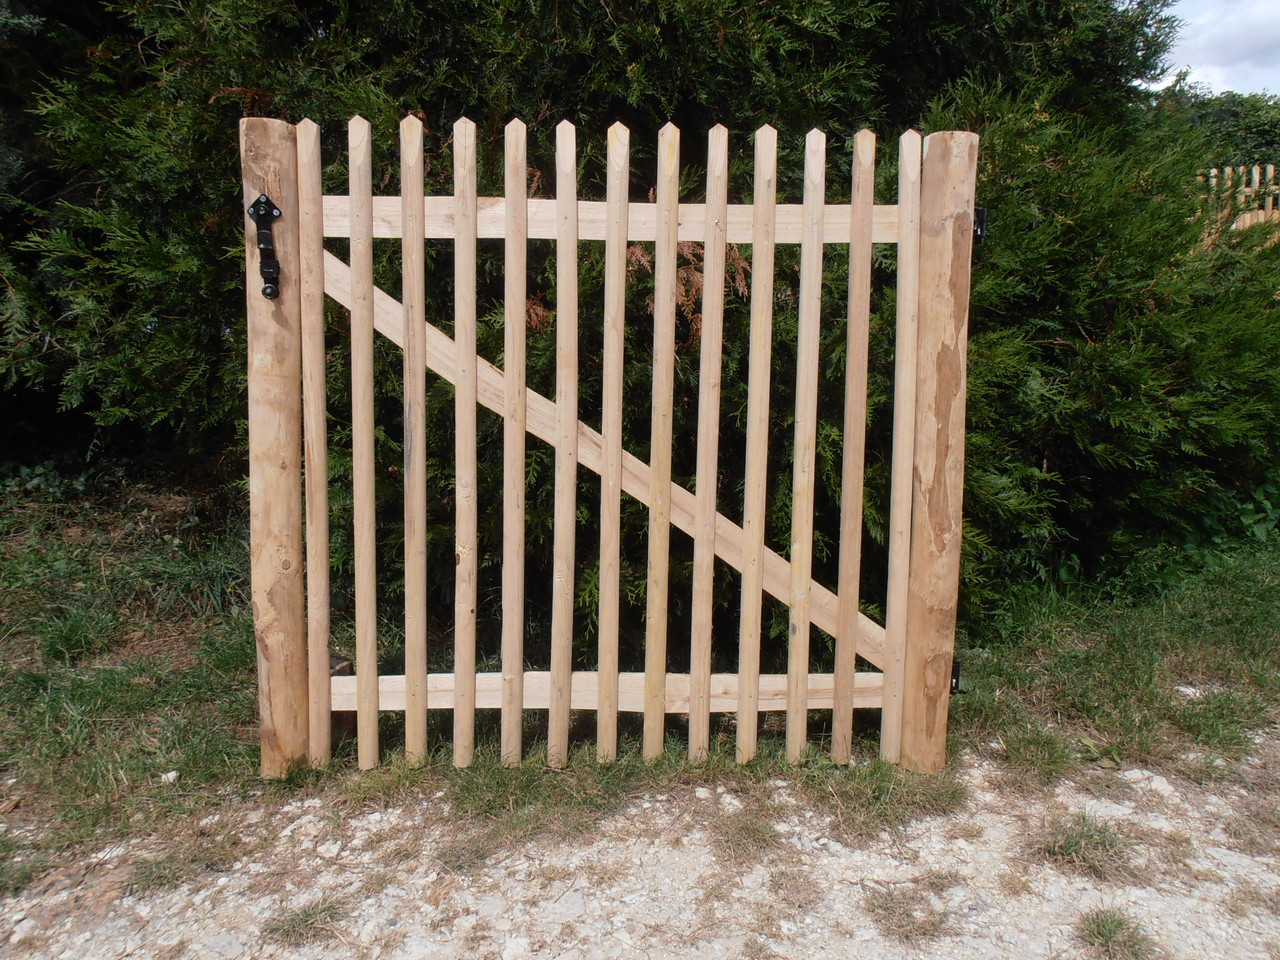 Boutique osier du morin cl tures am nagements for Portillon de jardin en bois